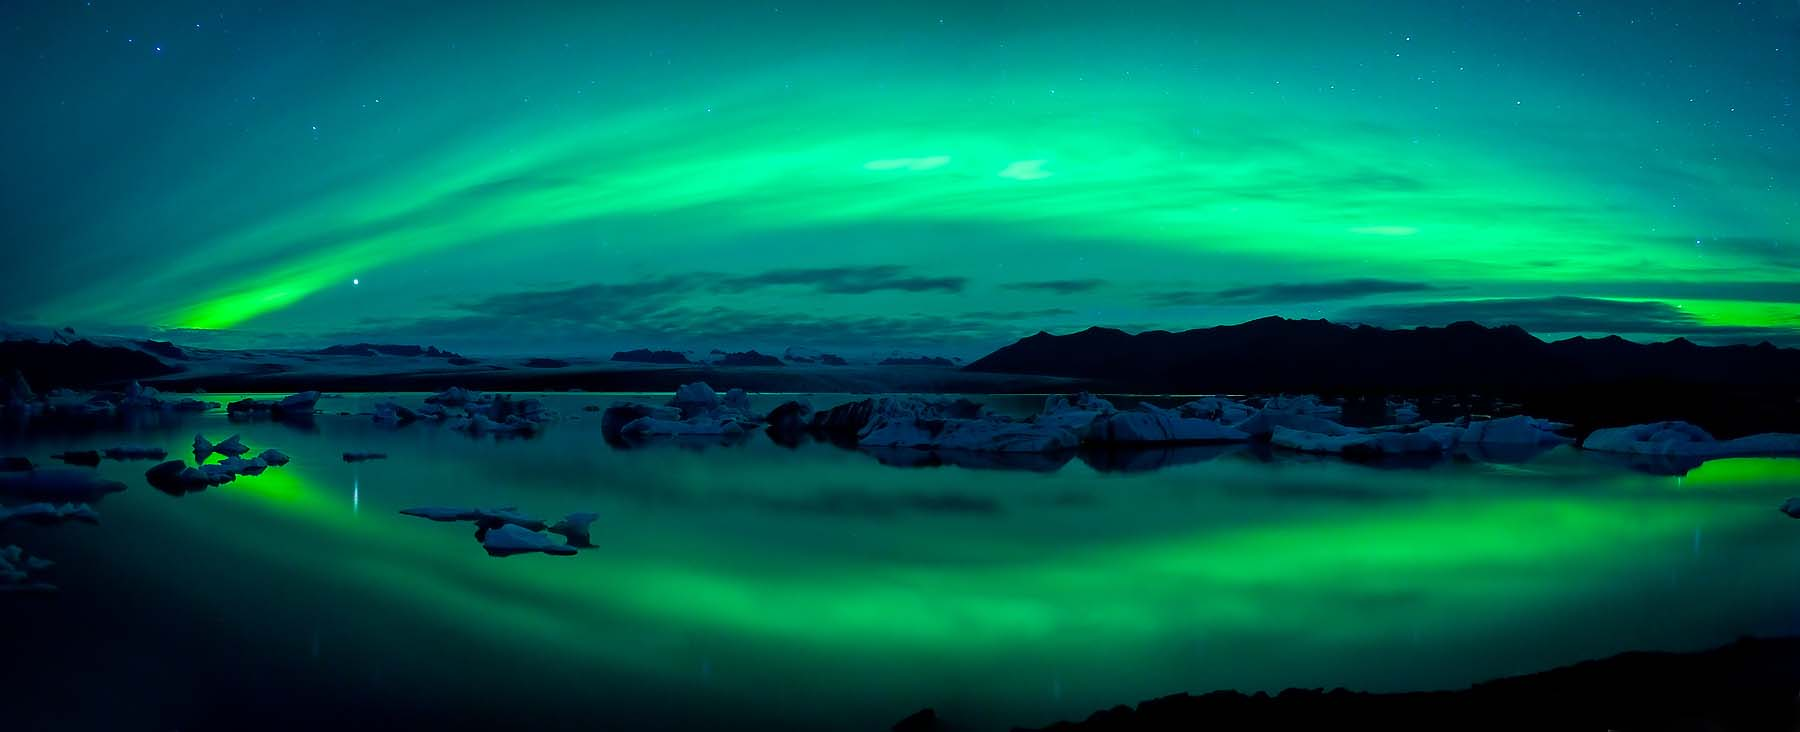 Aurora-Borealis-Northern-Lights-Jokulsarlon-Iceland-Panoramic-Lake-Landscape